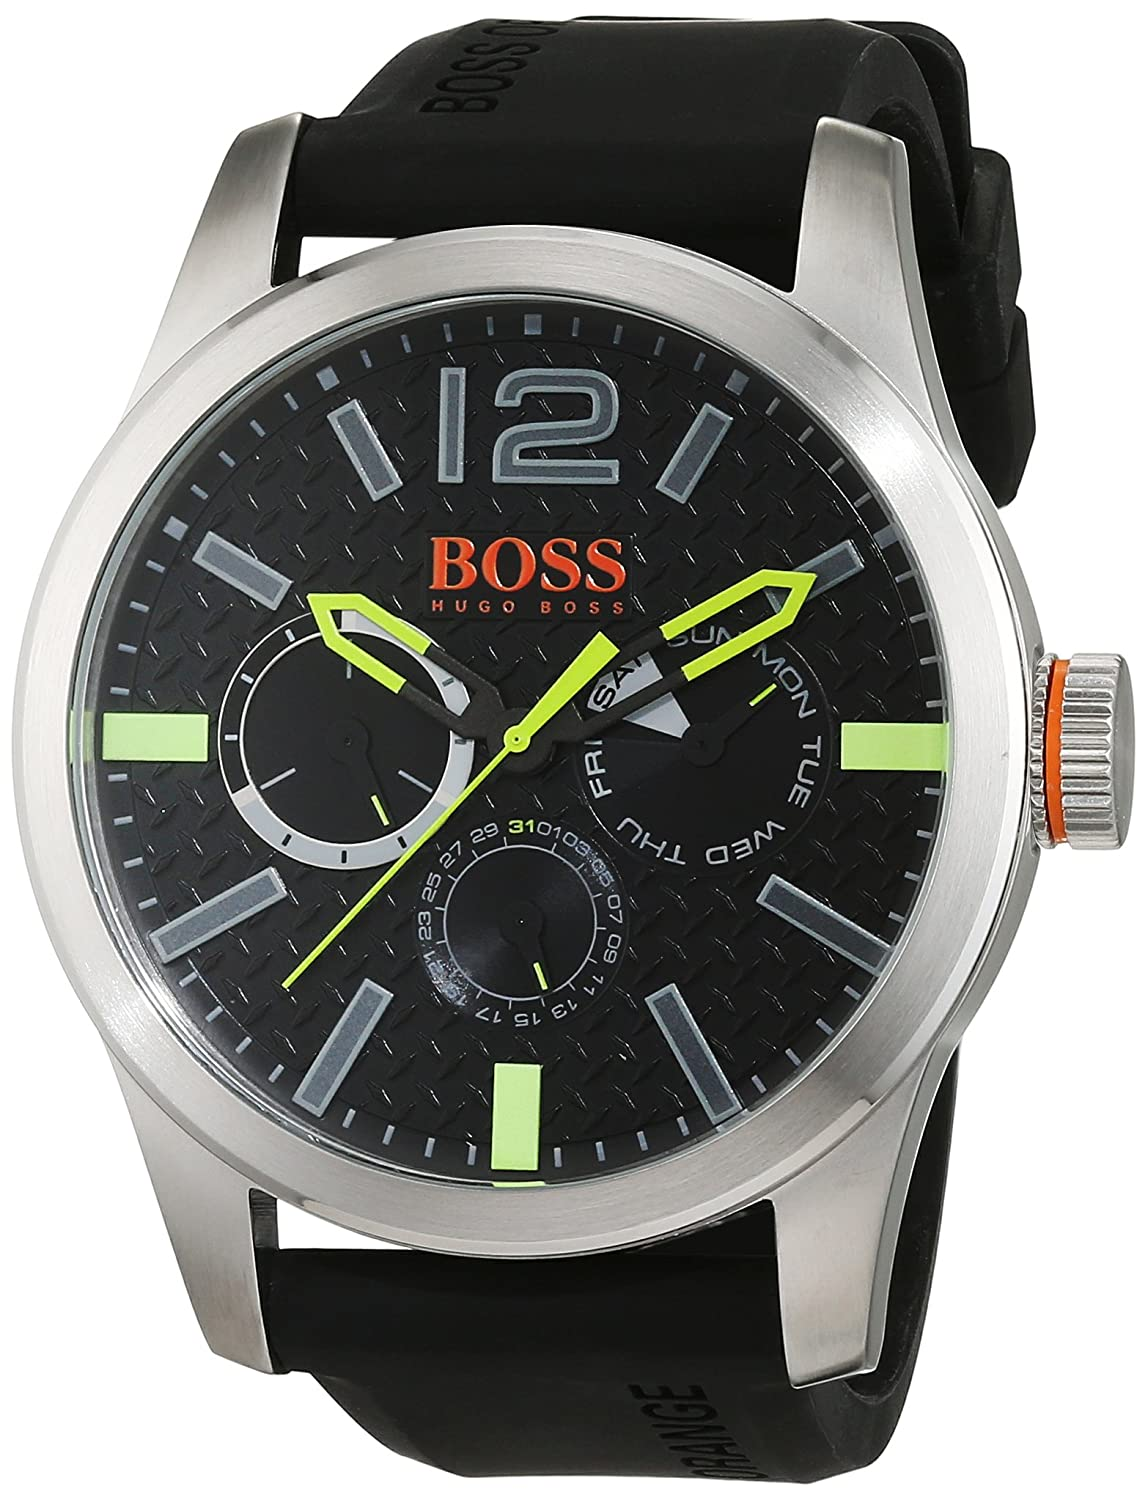 BOSS Orange Herren-Armbanduhr PARIS Analog Quarz Silikon 1513378